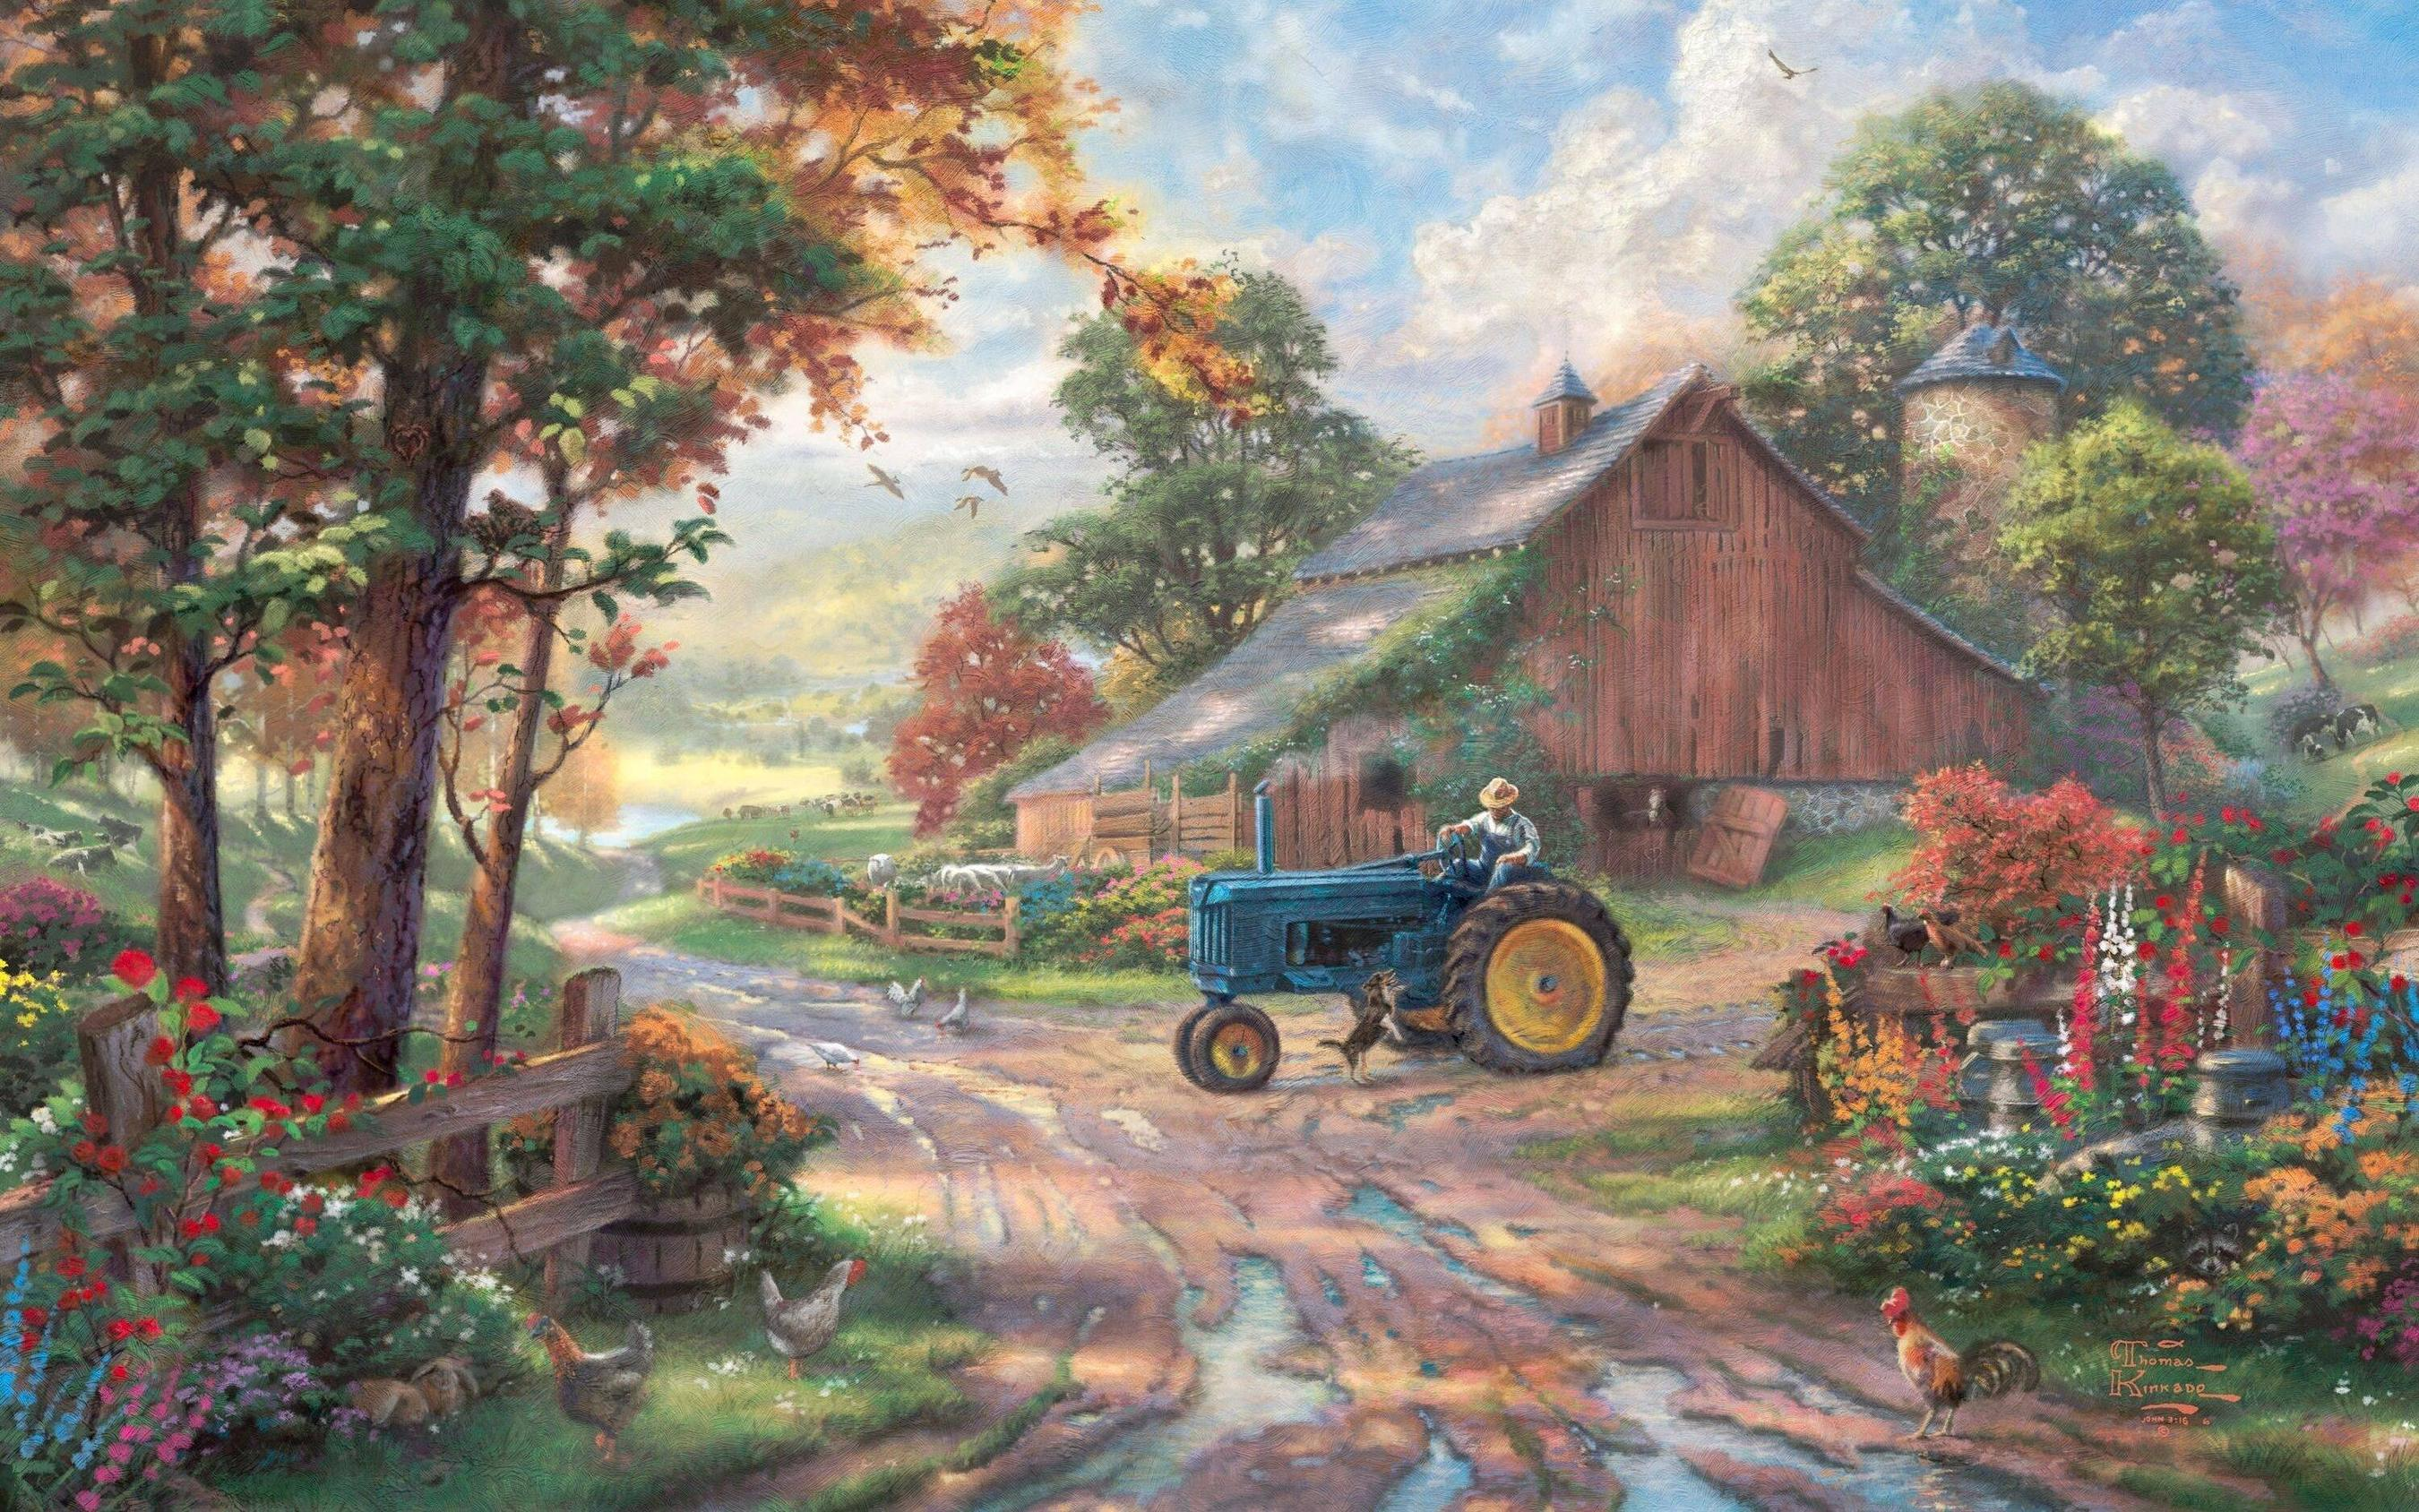 Download wallpaper Thomas Kinkade, Kincaid, painting, summer free .